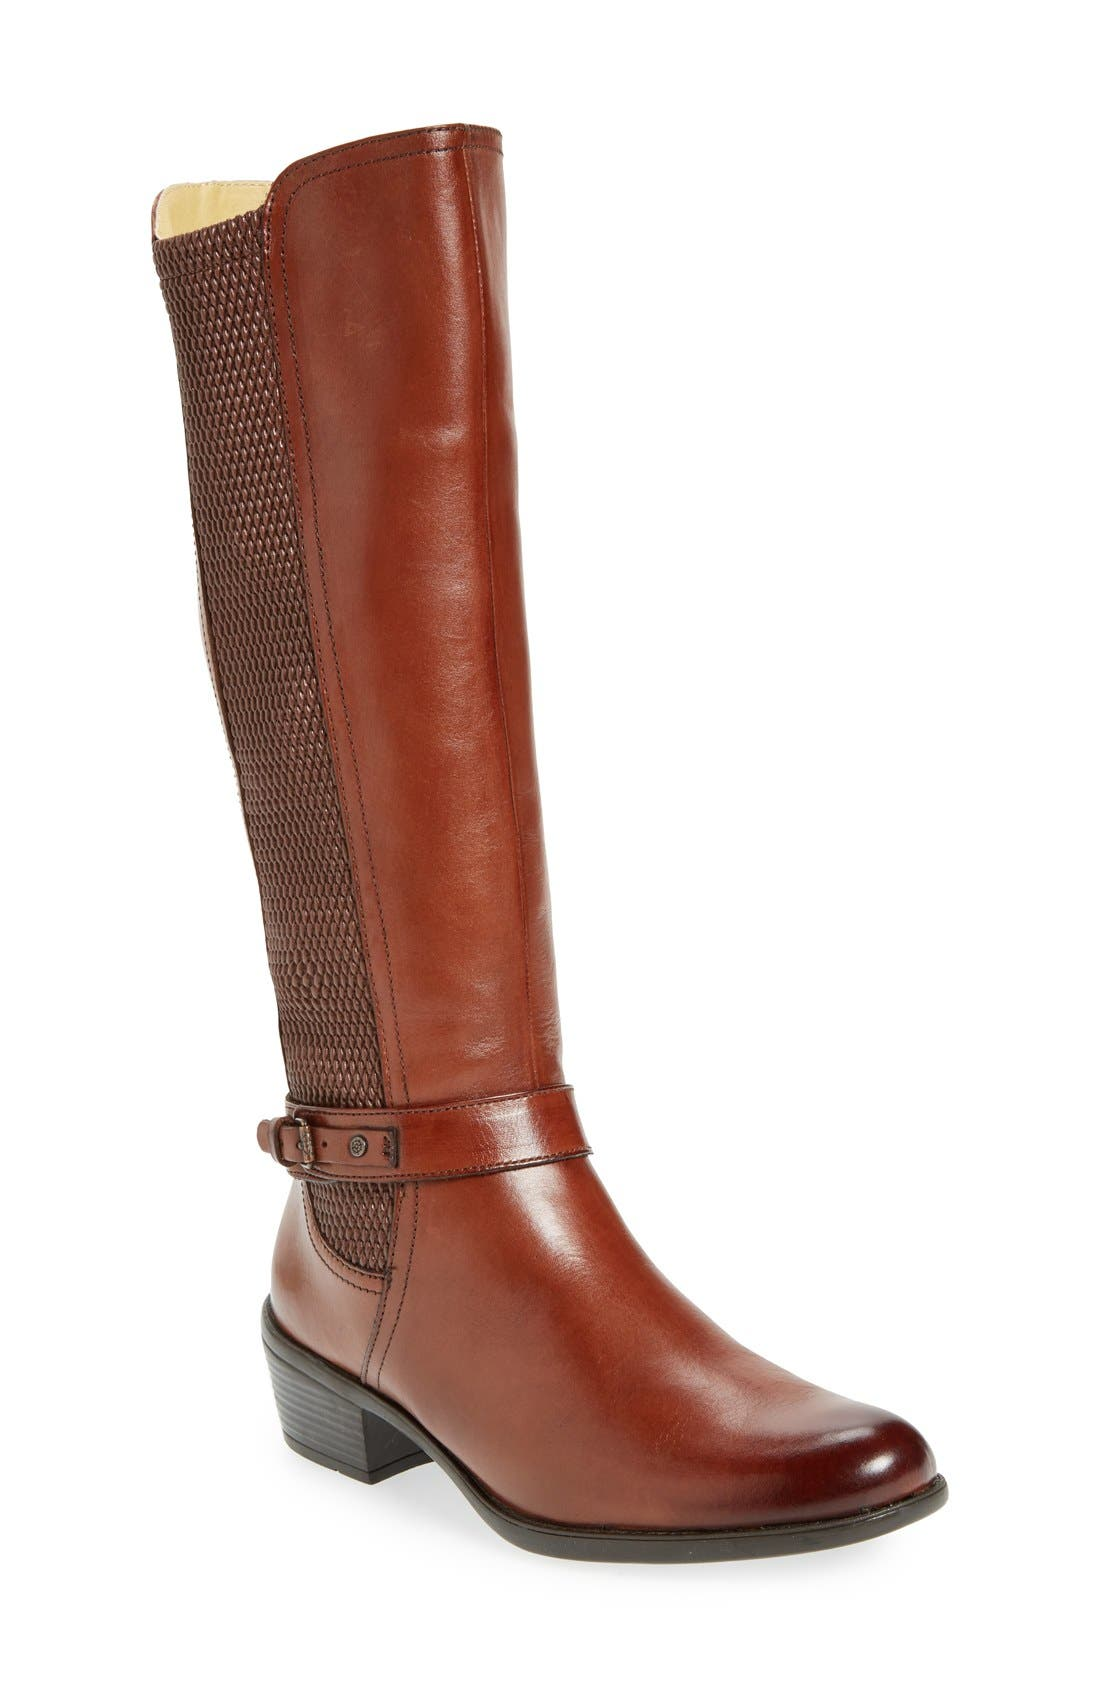 Alternate Image 1 Selected - Bussola 'Arad' Riding Boot (Women)